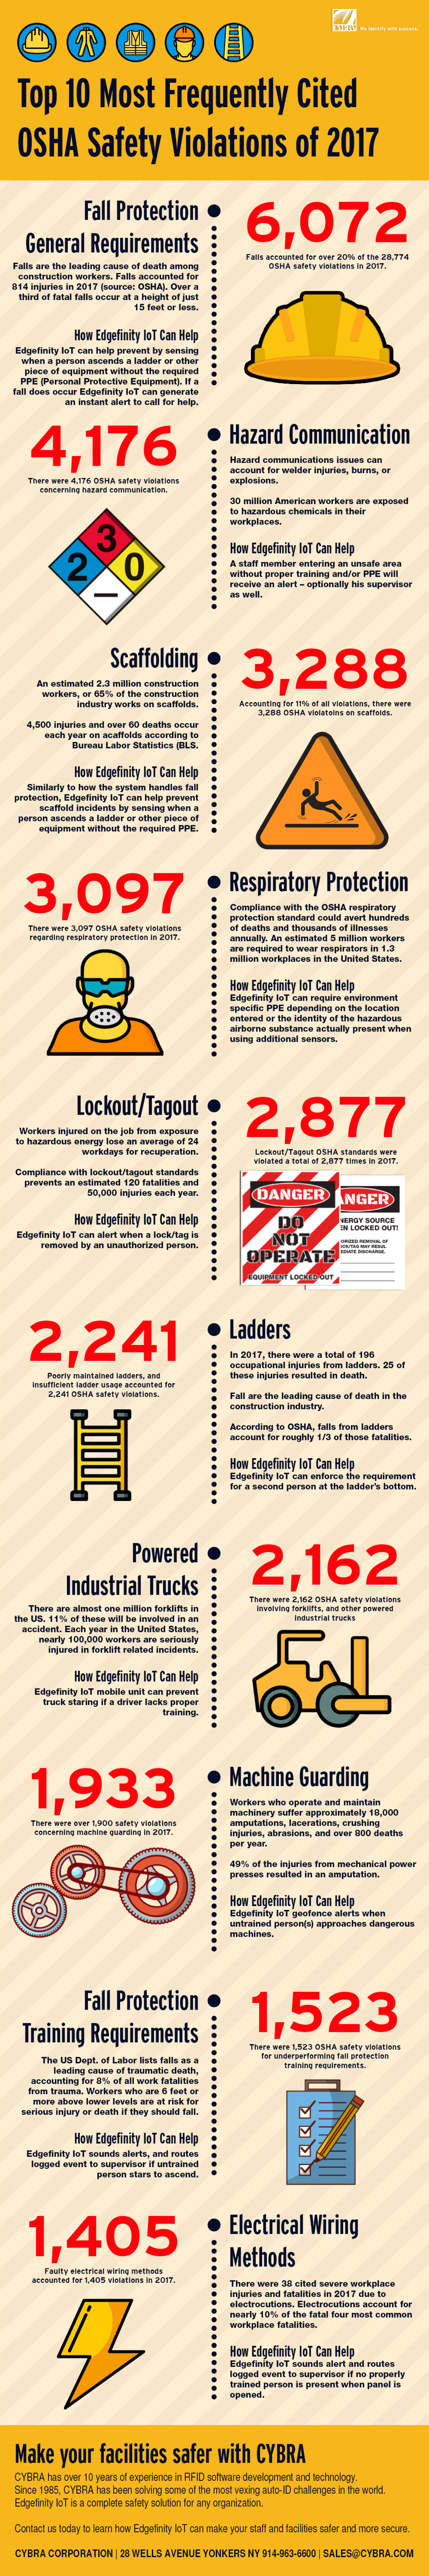 Top 10 Most Frequently Cited OSHA Safety Violations of 2017 Infographic